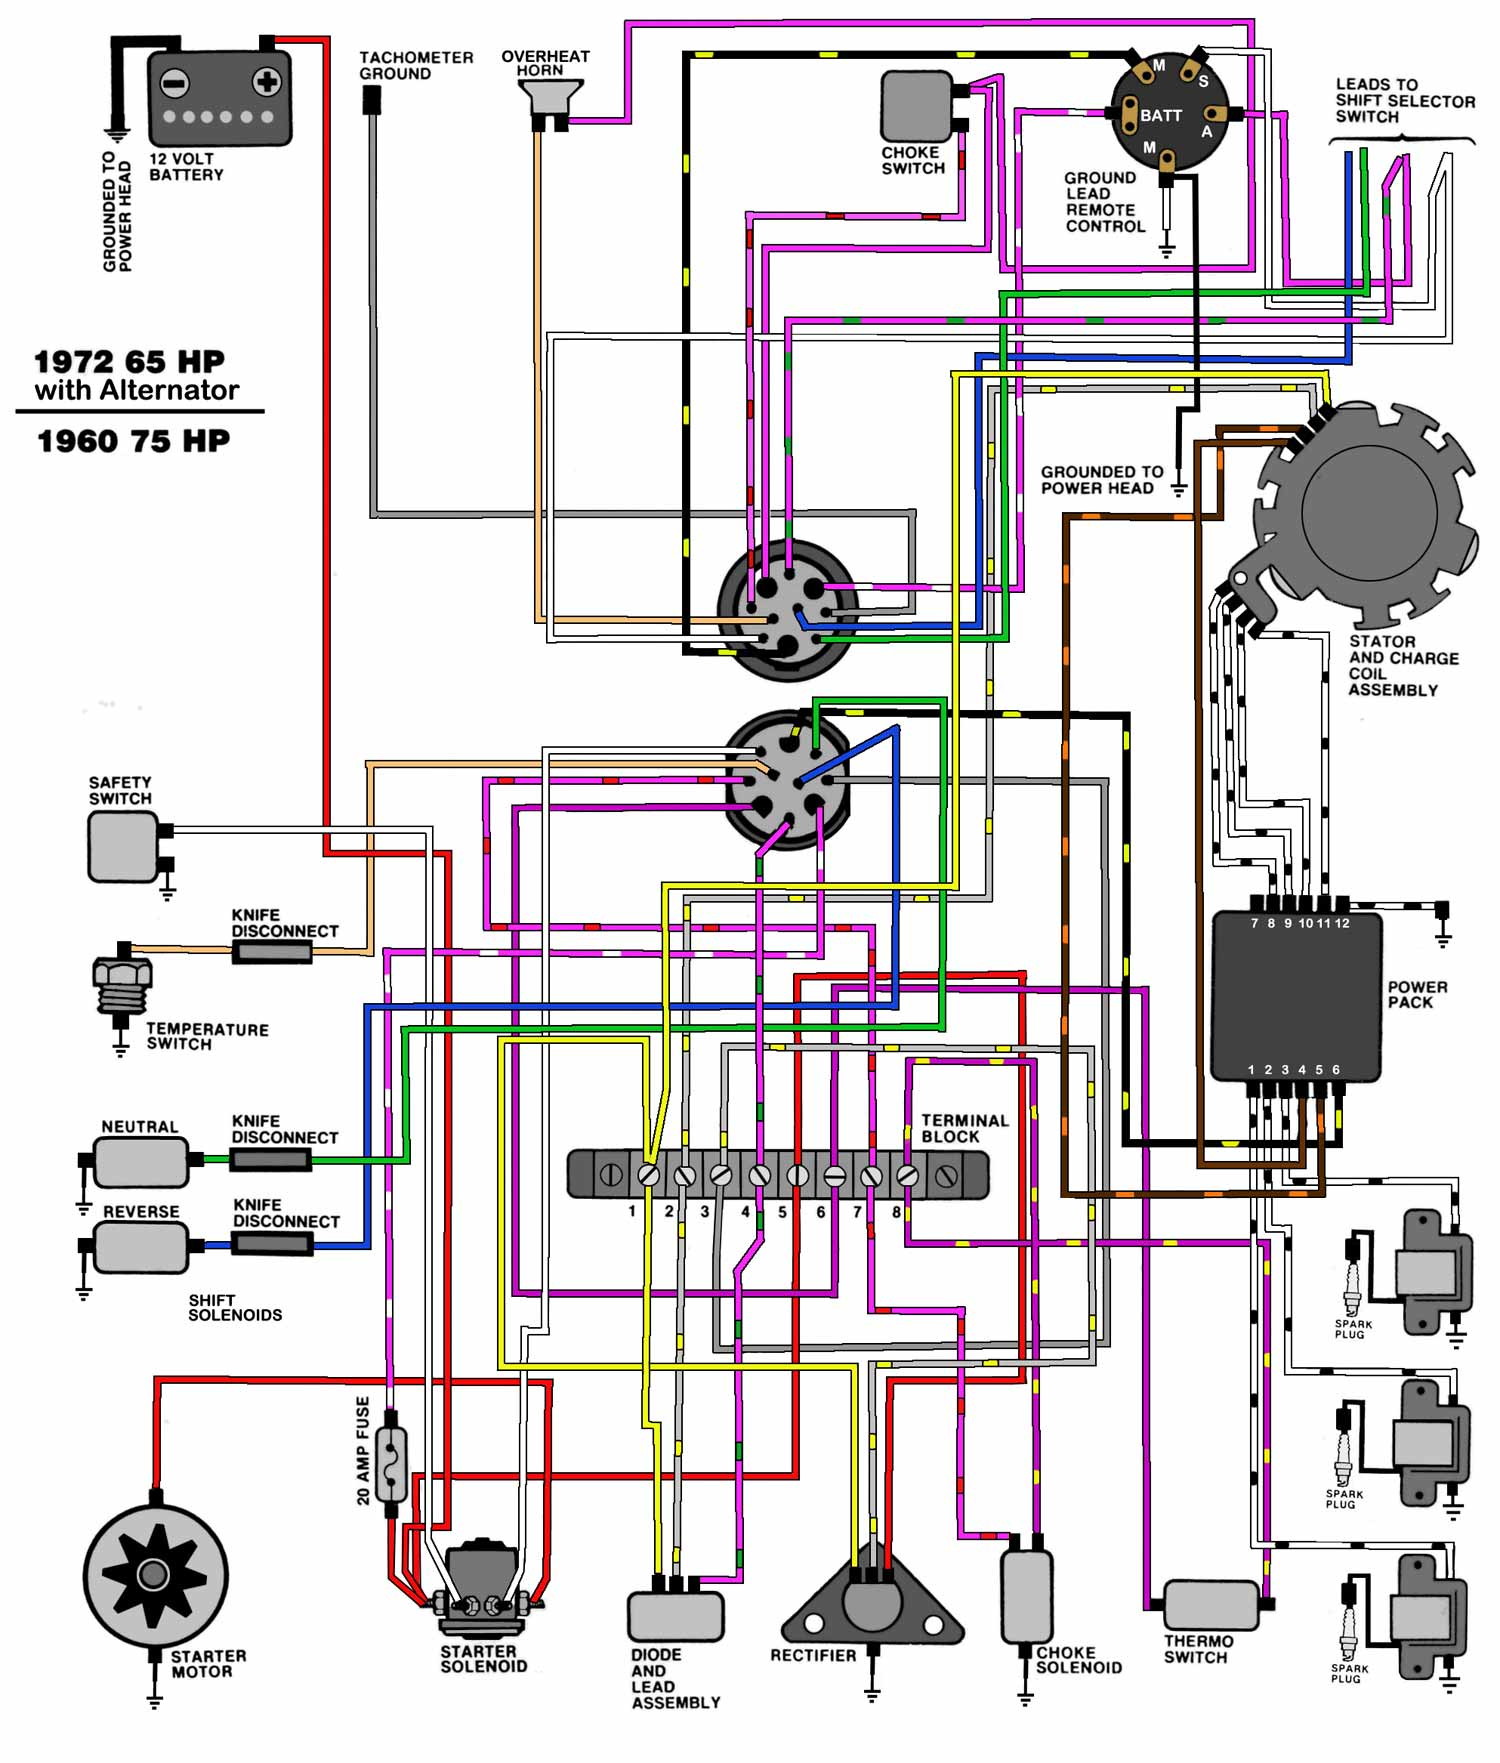 mastertech marine evinrude johnson outboard wiring diagrams Chrysler 55 HP Outboard Wiring Diagram  90 HP Force Outboard Wiring Diagram 50 HP Force Outboard Wiring Diagram 125 HP Force Outboard Wiring Diagram